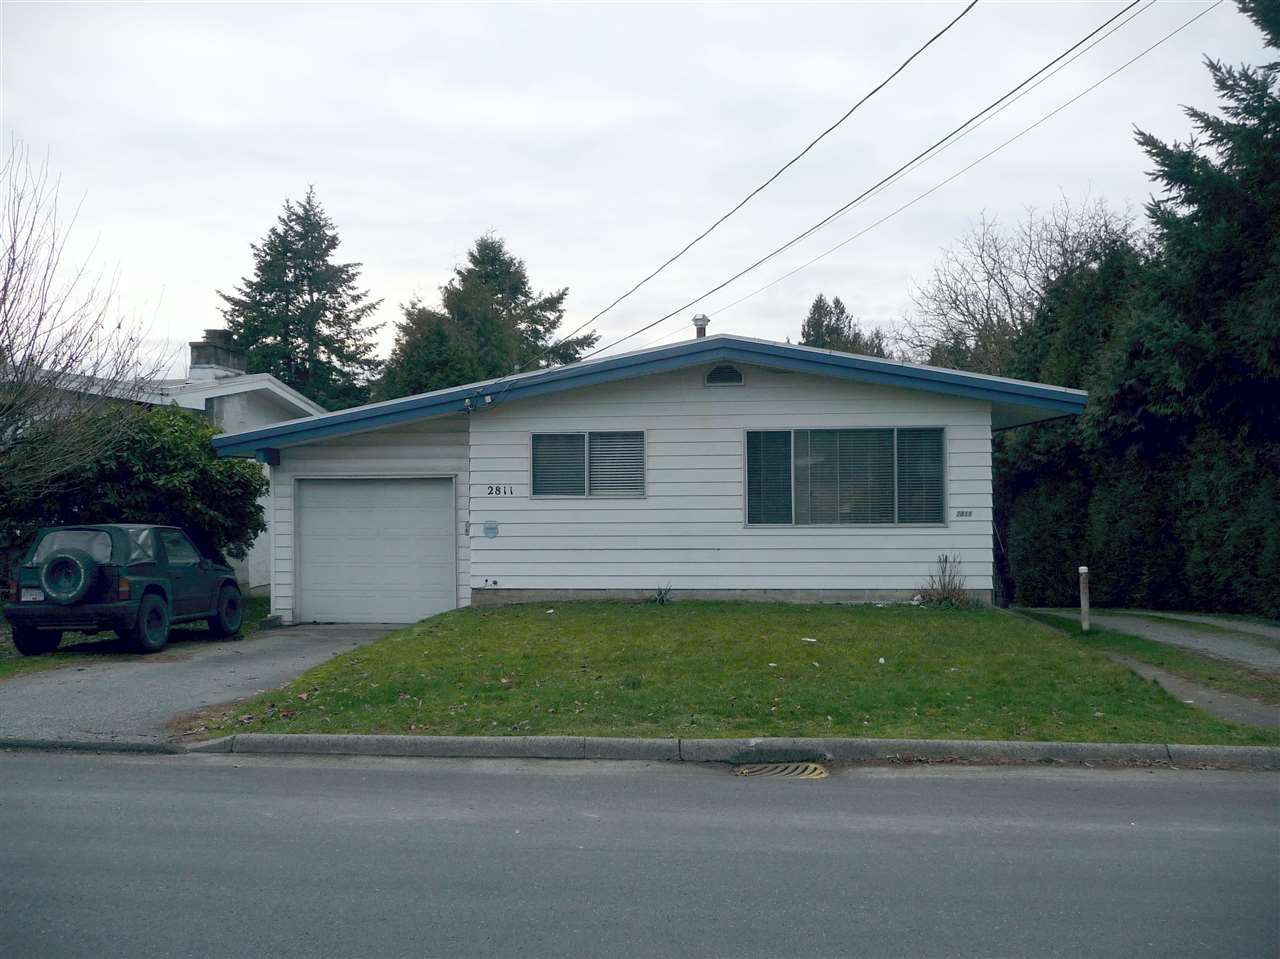 Main Photo: 2811 BABICH Street in Abbotsford: Central Abbotsford House for sale : MLS®# R2238463